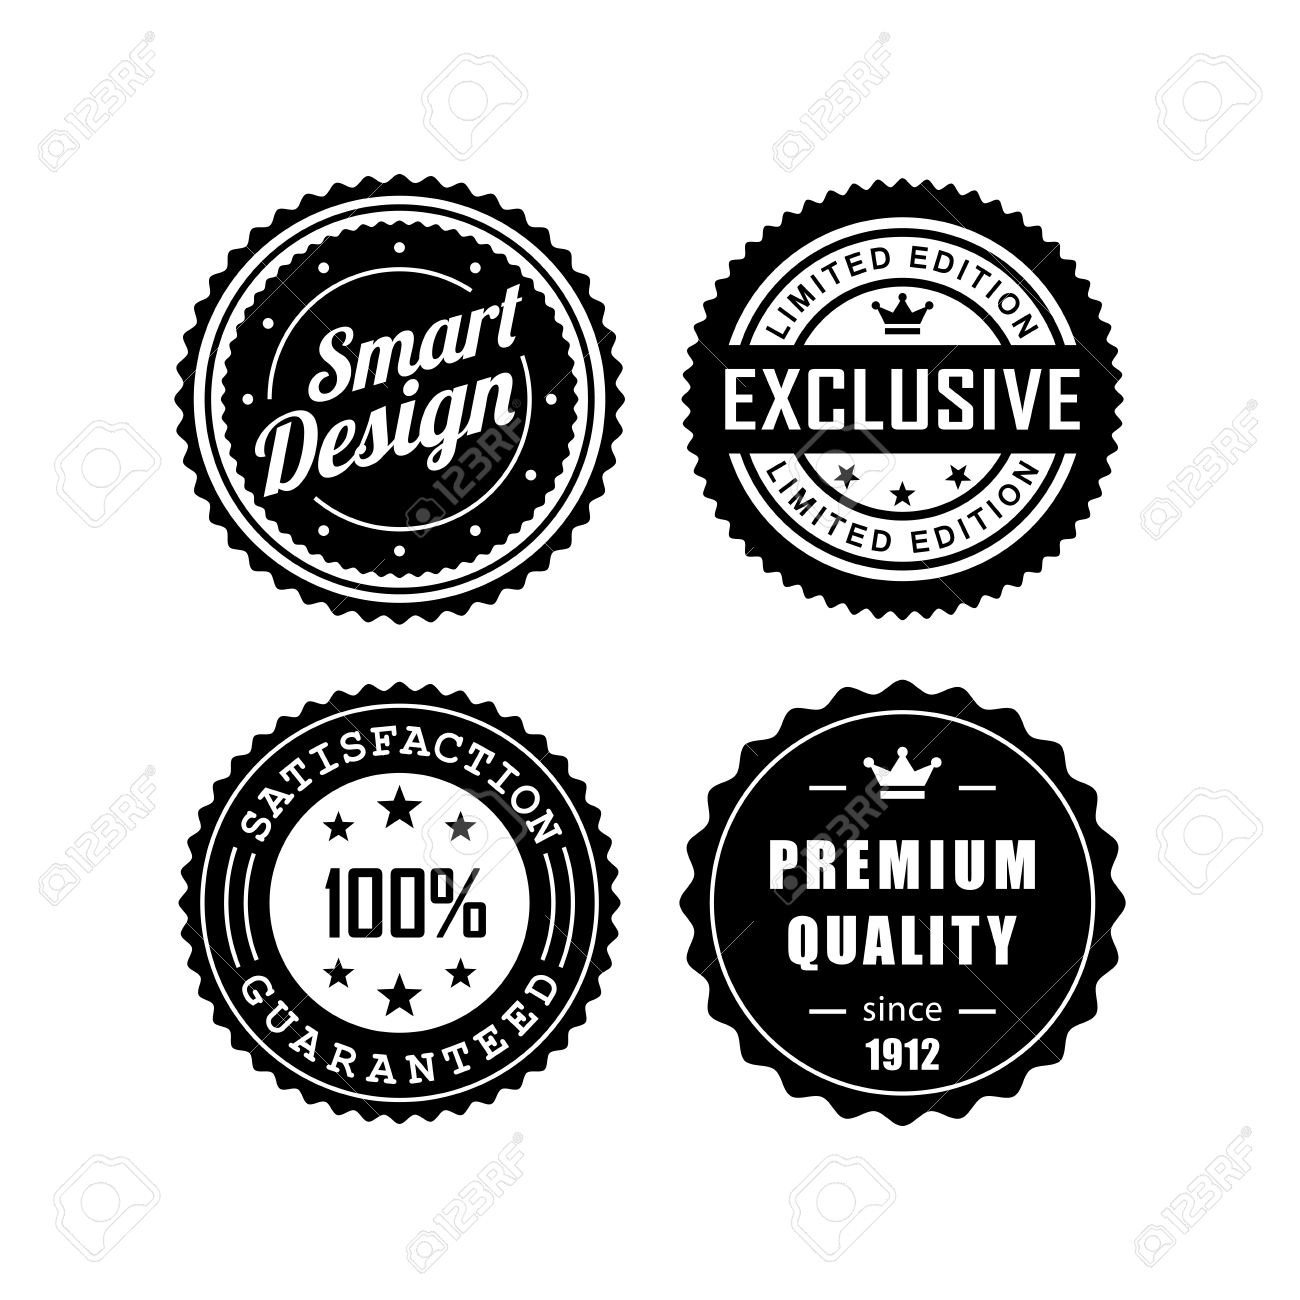 Vintage Badges Vector Design 3 Royalty Free Cliparts Vectors And